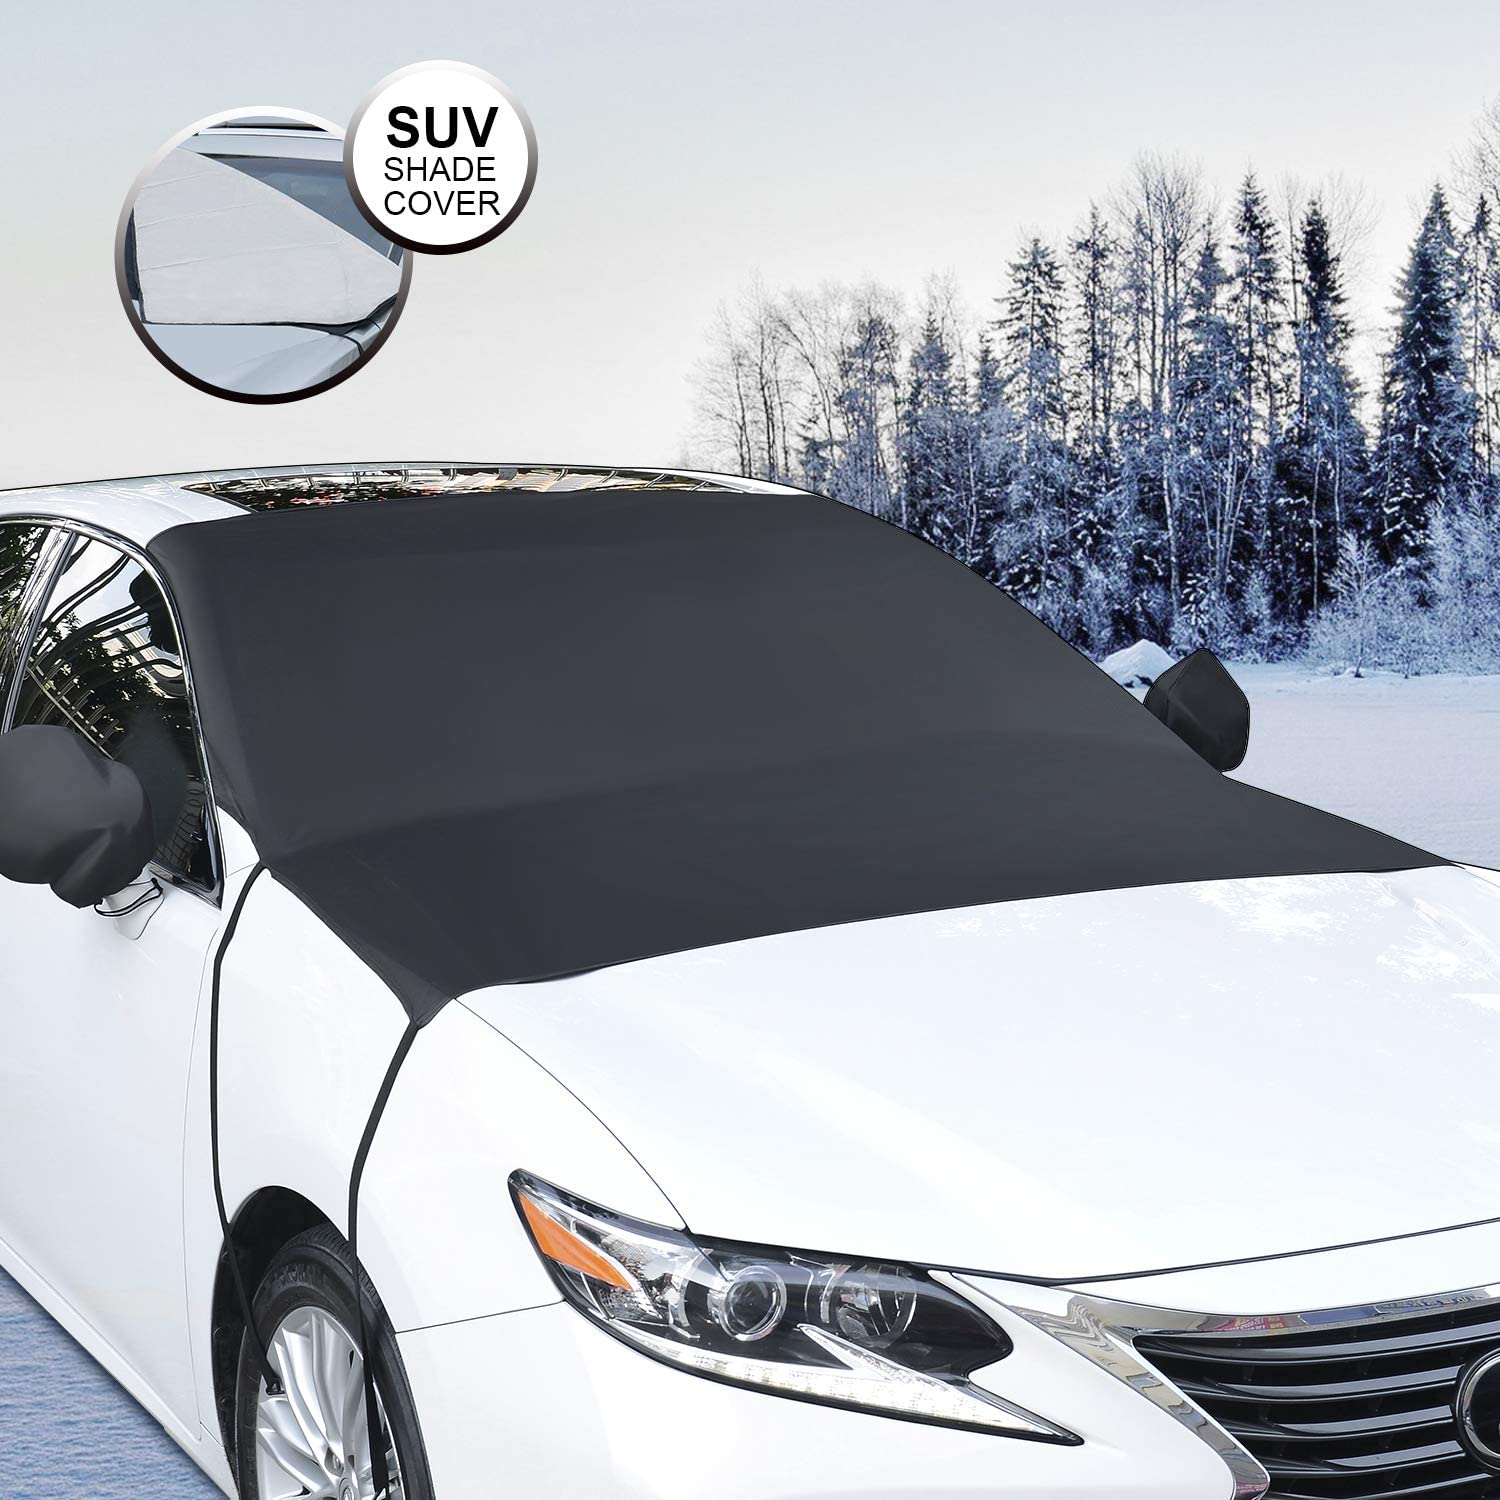 JASVIC Car Windscreen Snow Cover Waterproof Magnetic Edges Car Snow Cover,All Weather Frost Guard Protector for Ice Snow Trucks Hooks Windshield Protector Fit for Most Cars 200x120cm SUV